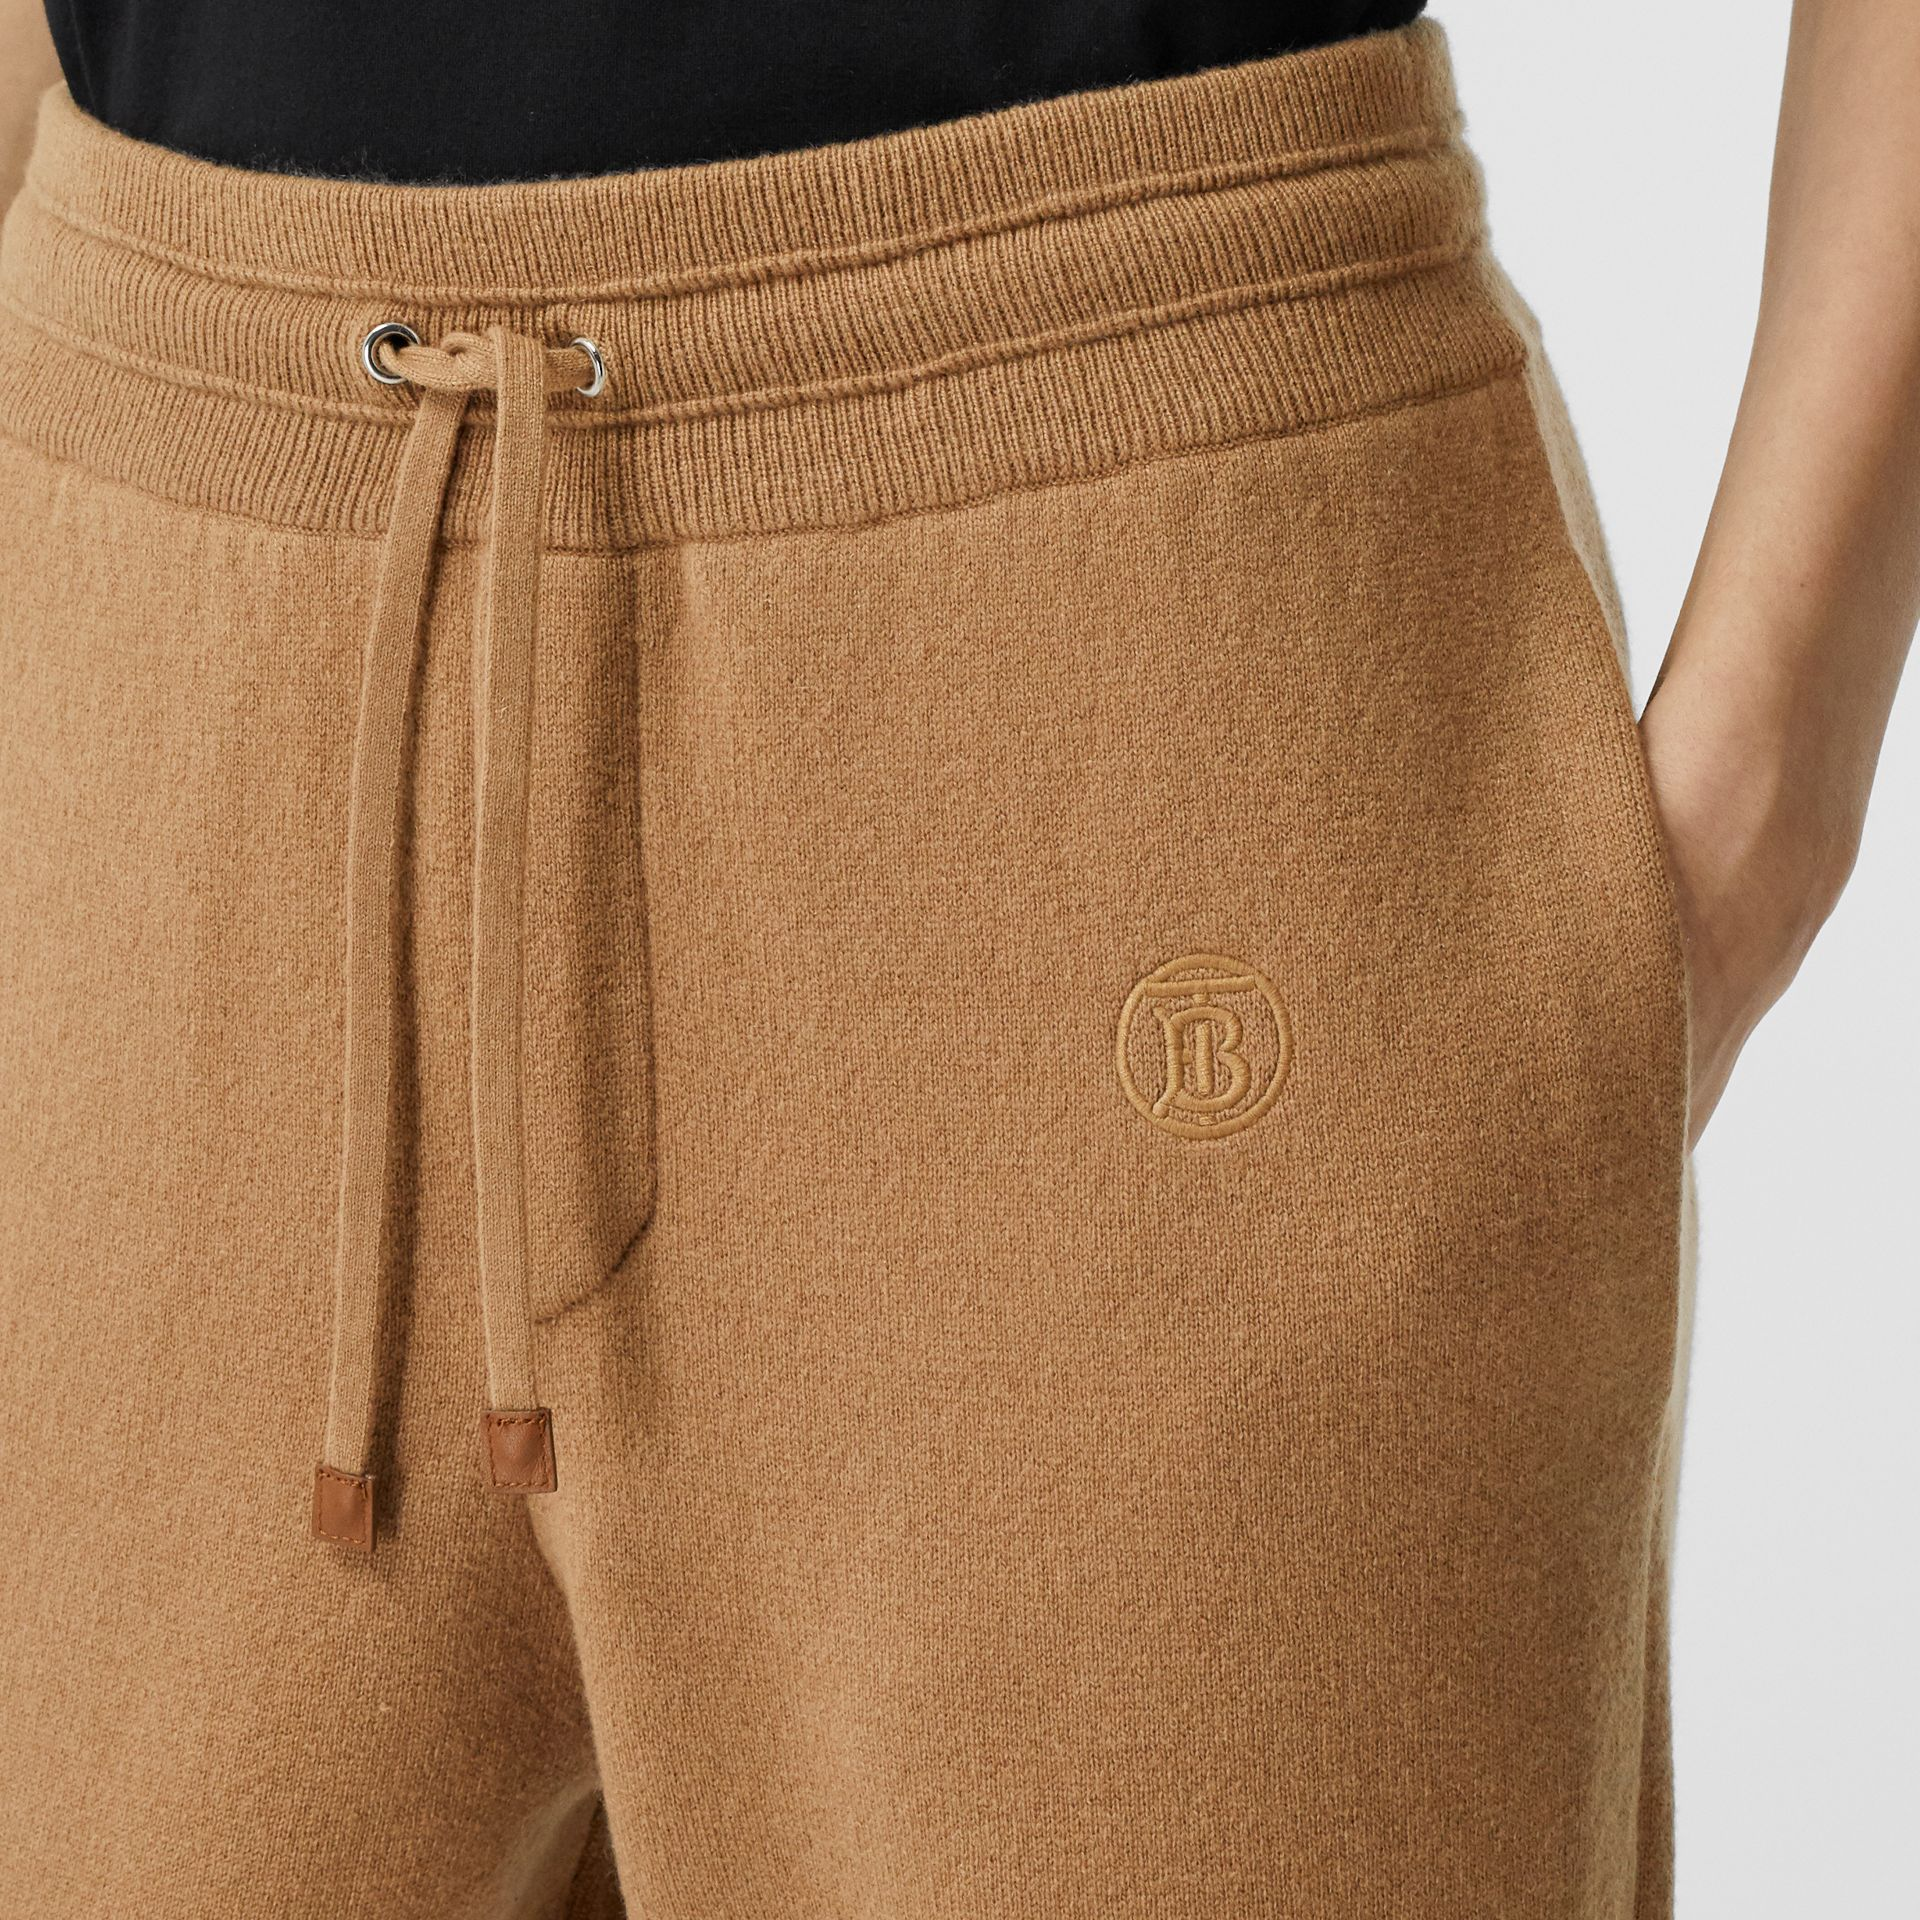 Monogram Motif Cashmere Blend Jogging Pants in Camel - Women | Burberry - gallery image 1